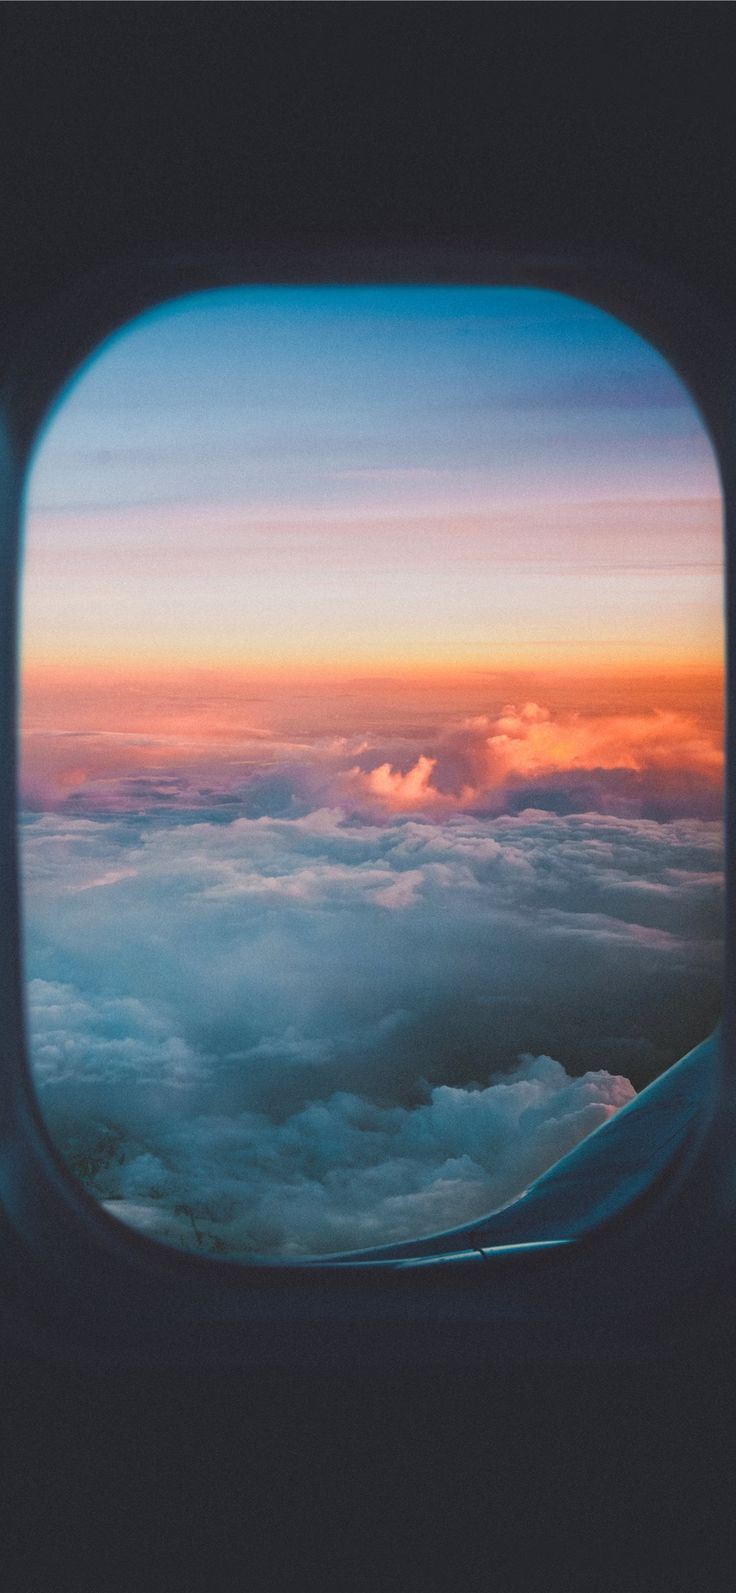 Take me to the sky #sunset #lost #cloud #plane #moment  #Wallpaper #Background #iPhoneX #iPhoneXS #iPhoneXR